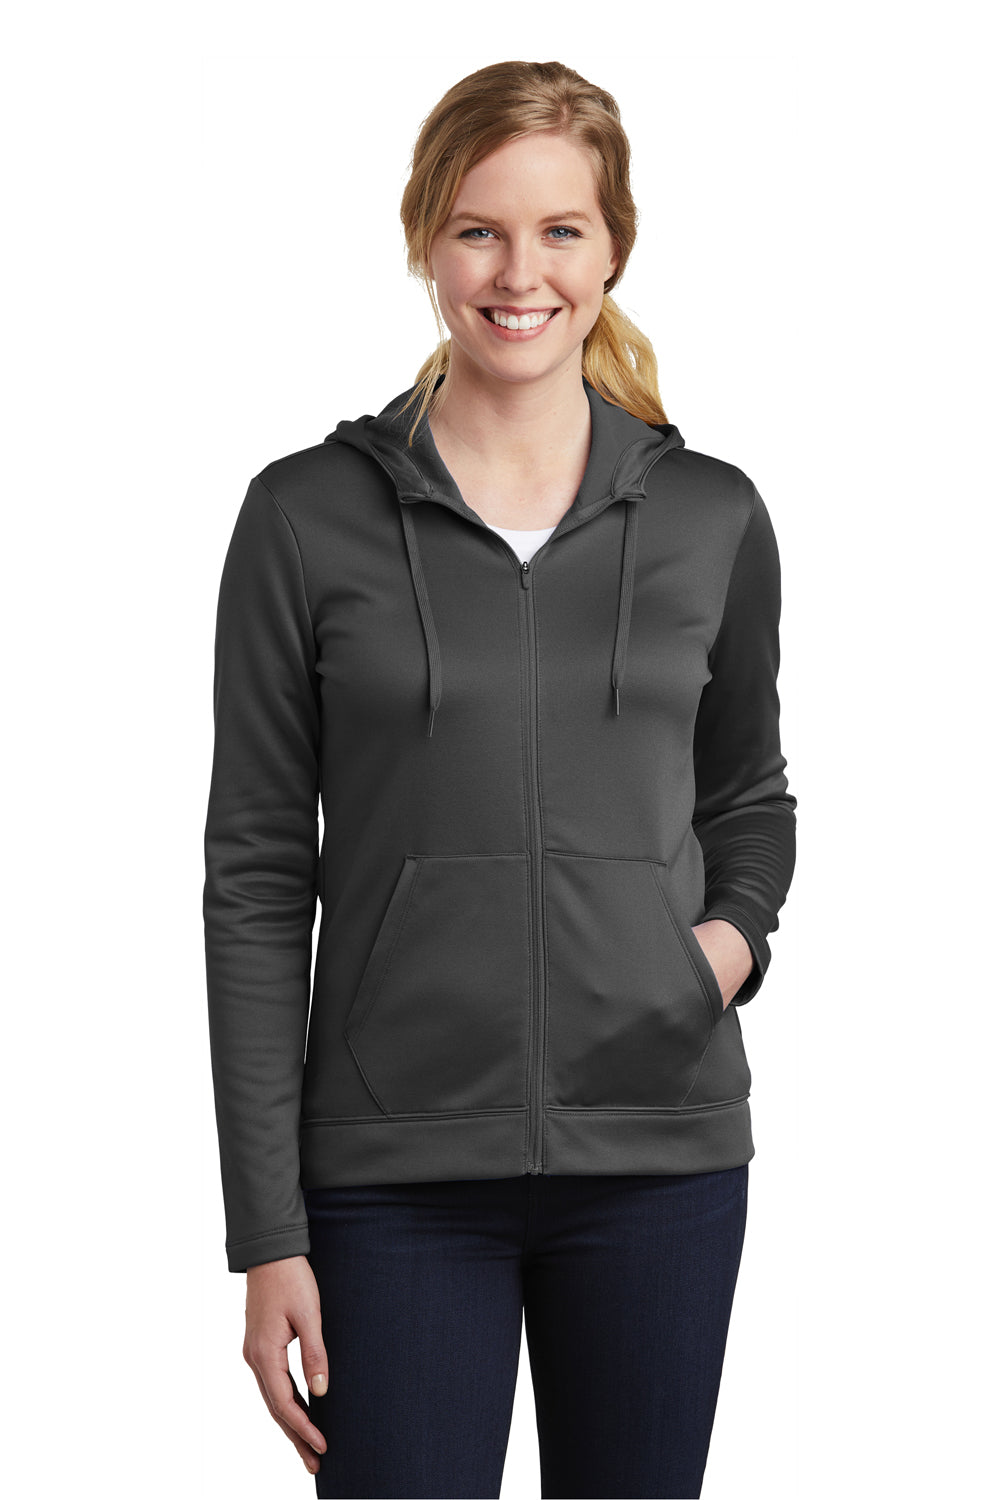 Nike Nkah6264 Womens Anthracite Grey Therma Fit Fleece Full Zip Hooded Sweatshirt Hoodie Bigtopshirtshop Com Raglan sleeves allow for a comfortable range of mot. nike womens therma fit fleece full zip hooded sweatshirt hoodie anthracite grey